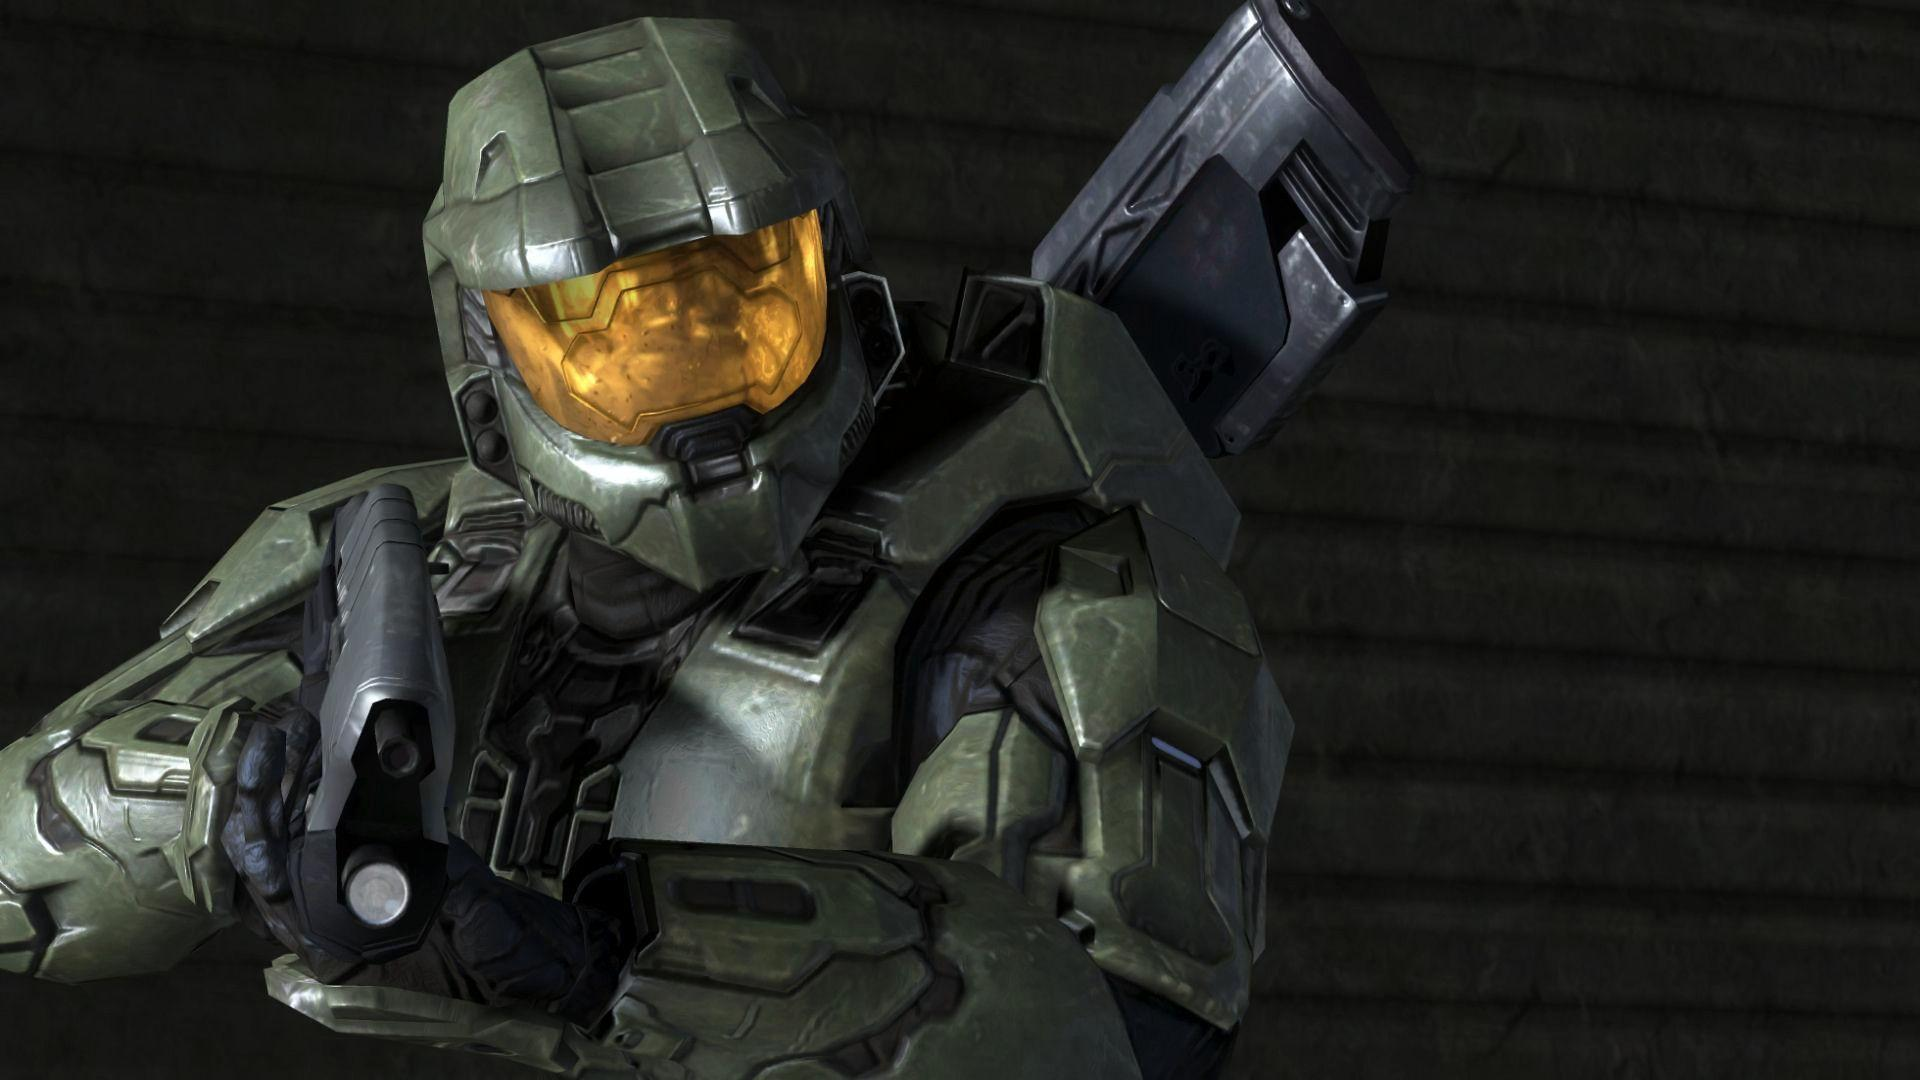 Halo 3 Master Chief Wallpapers Wallpaper Cave